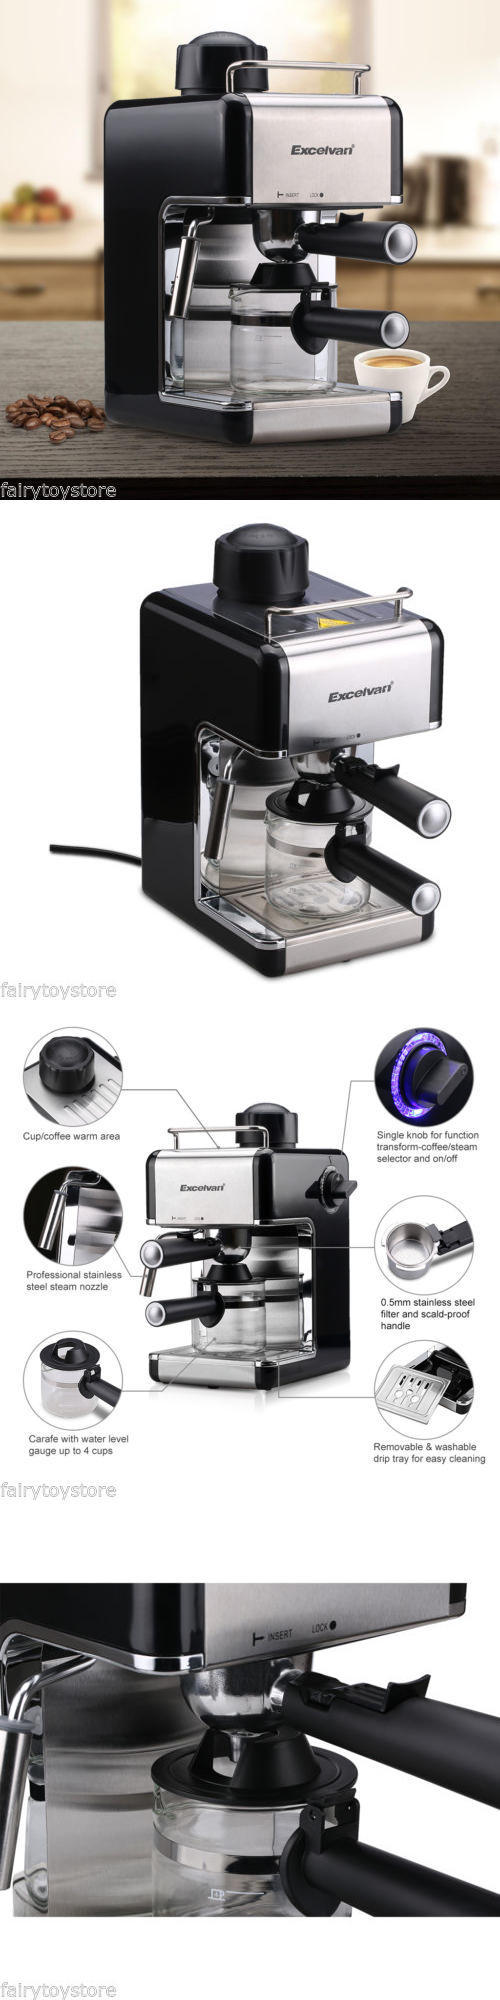 Appliances stainless steel steam espresso cappuccino coffee maker